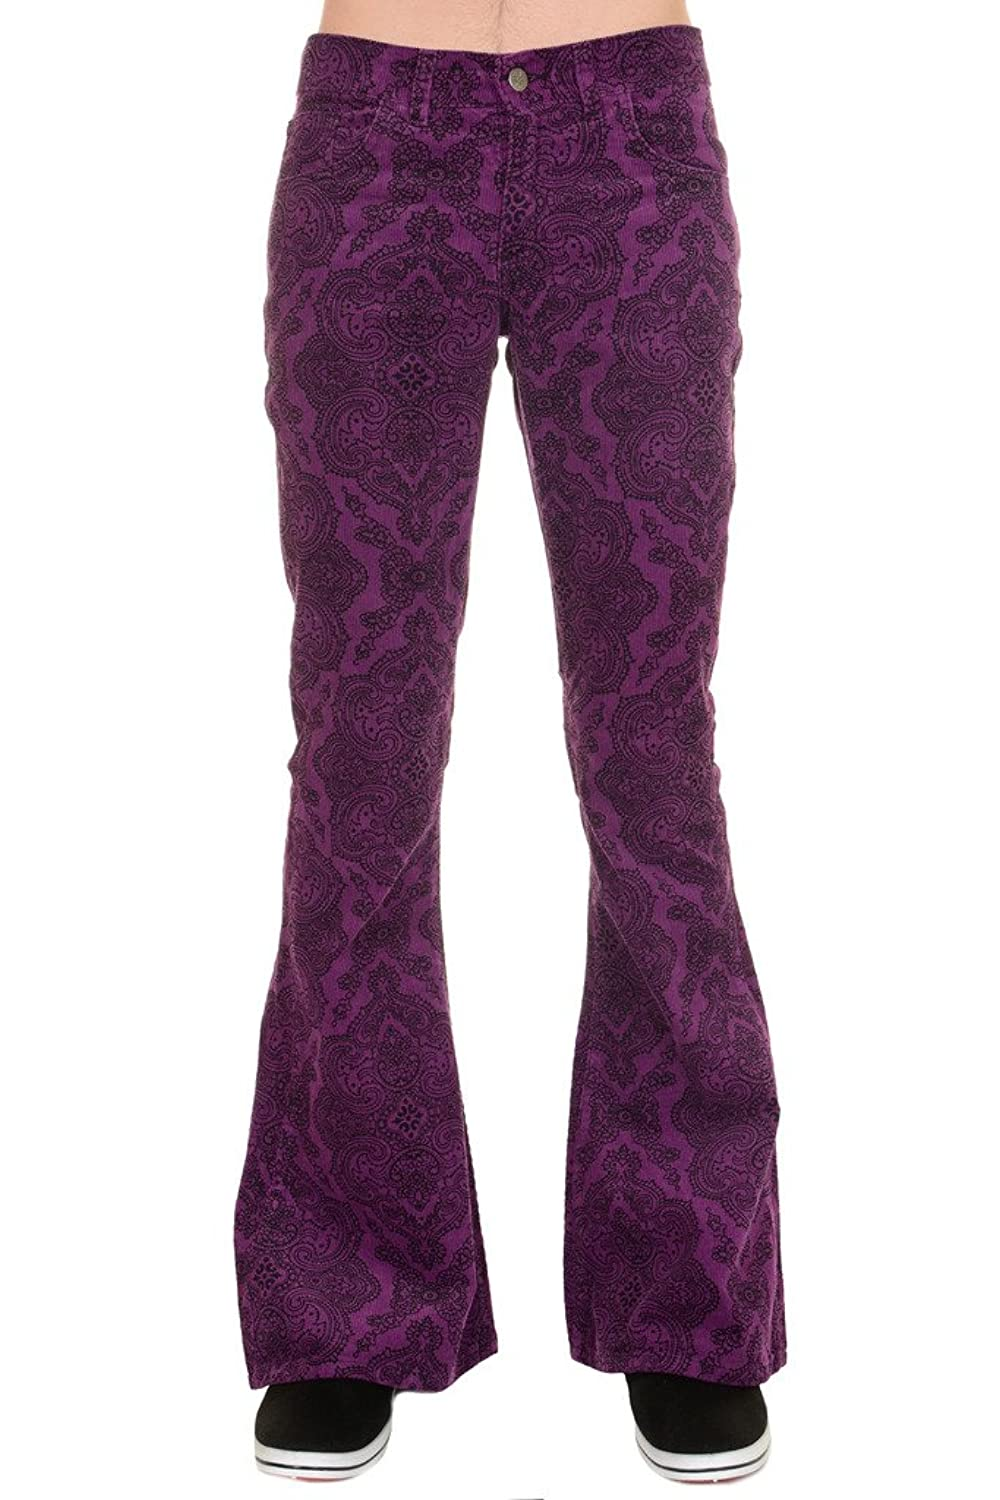 Retro Clothing for Men | Vintage Men's Fashion Run & Fly Mens 60s 70s Vintage Grape Paisely Corduroy Retro Bell Bottom Flares $54.95 AT vintagedancer.com